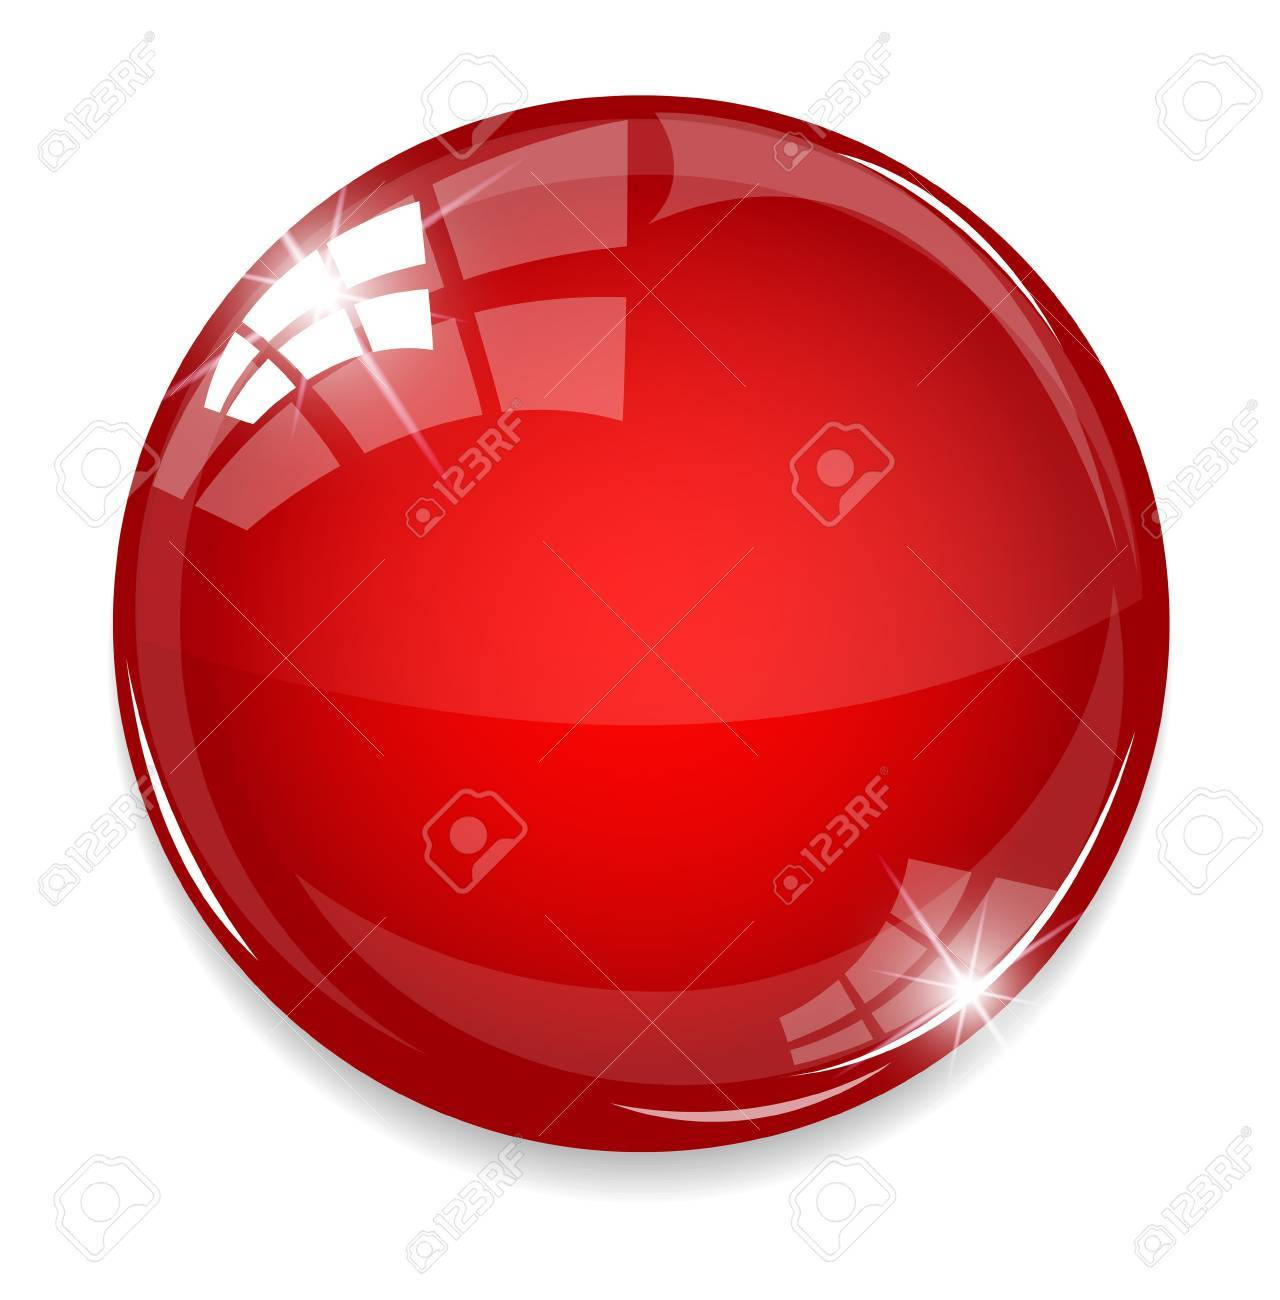 Empty red button - 32210971